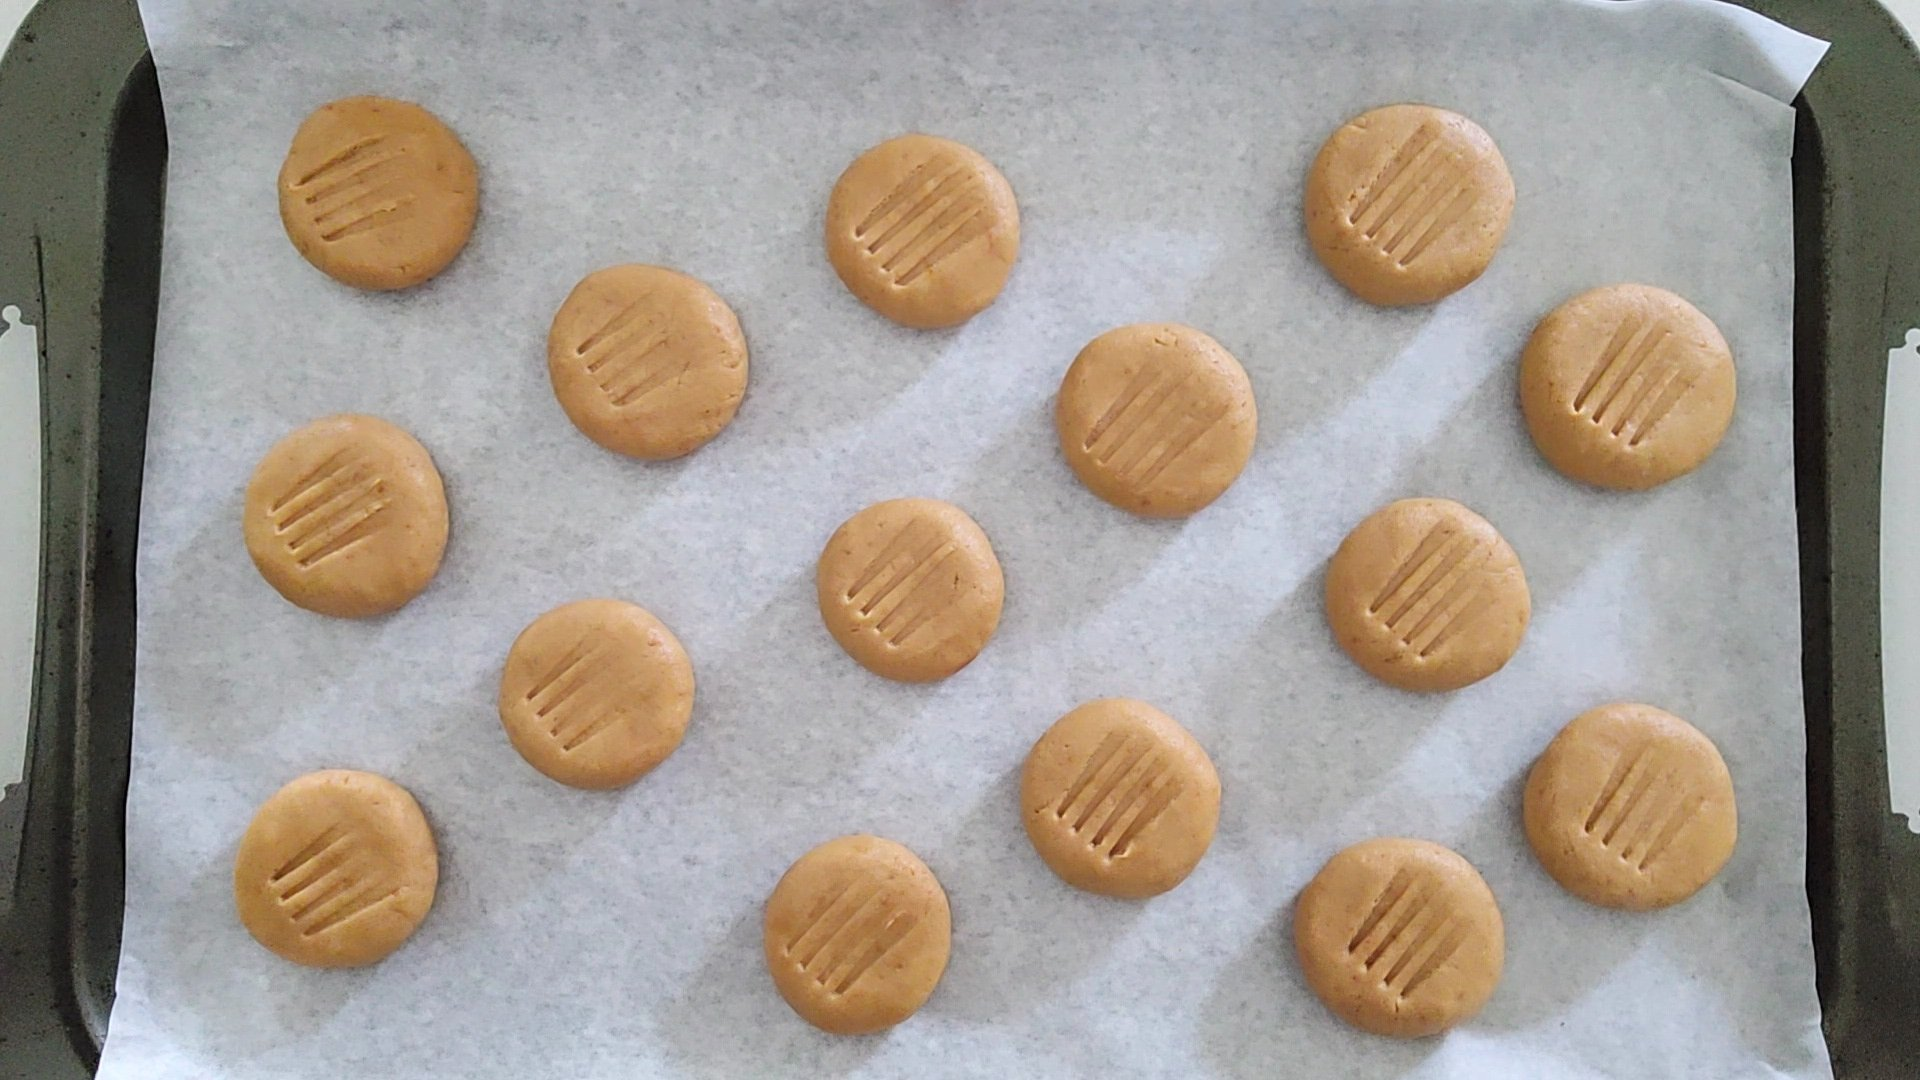 pattern on cookies with fork